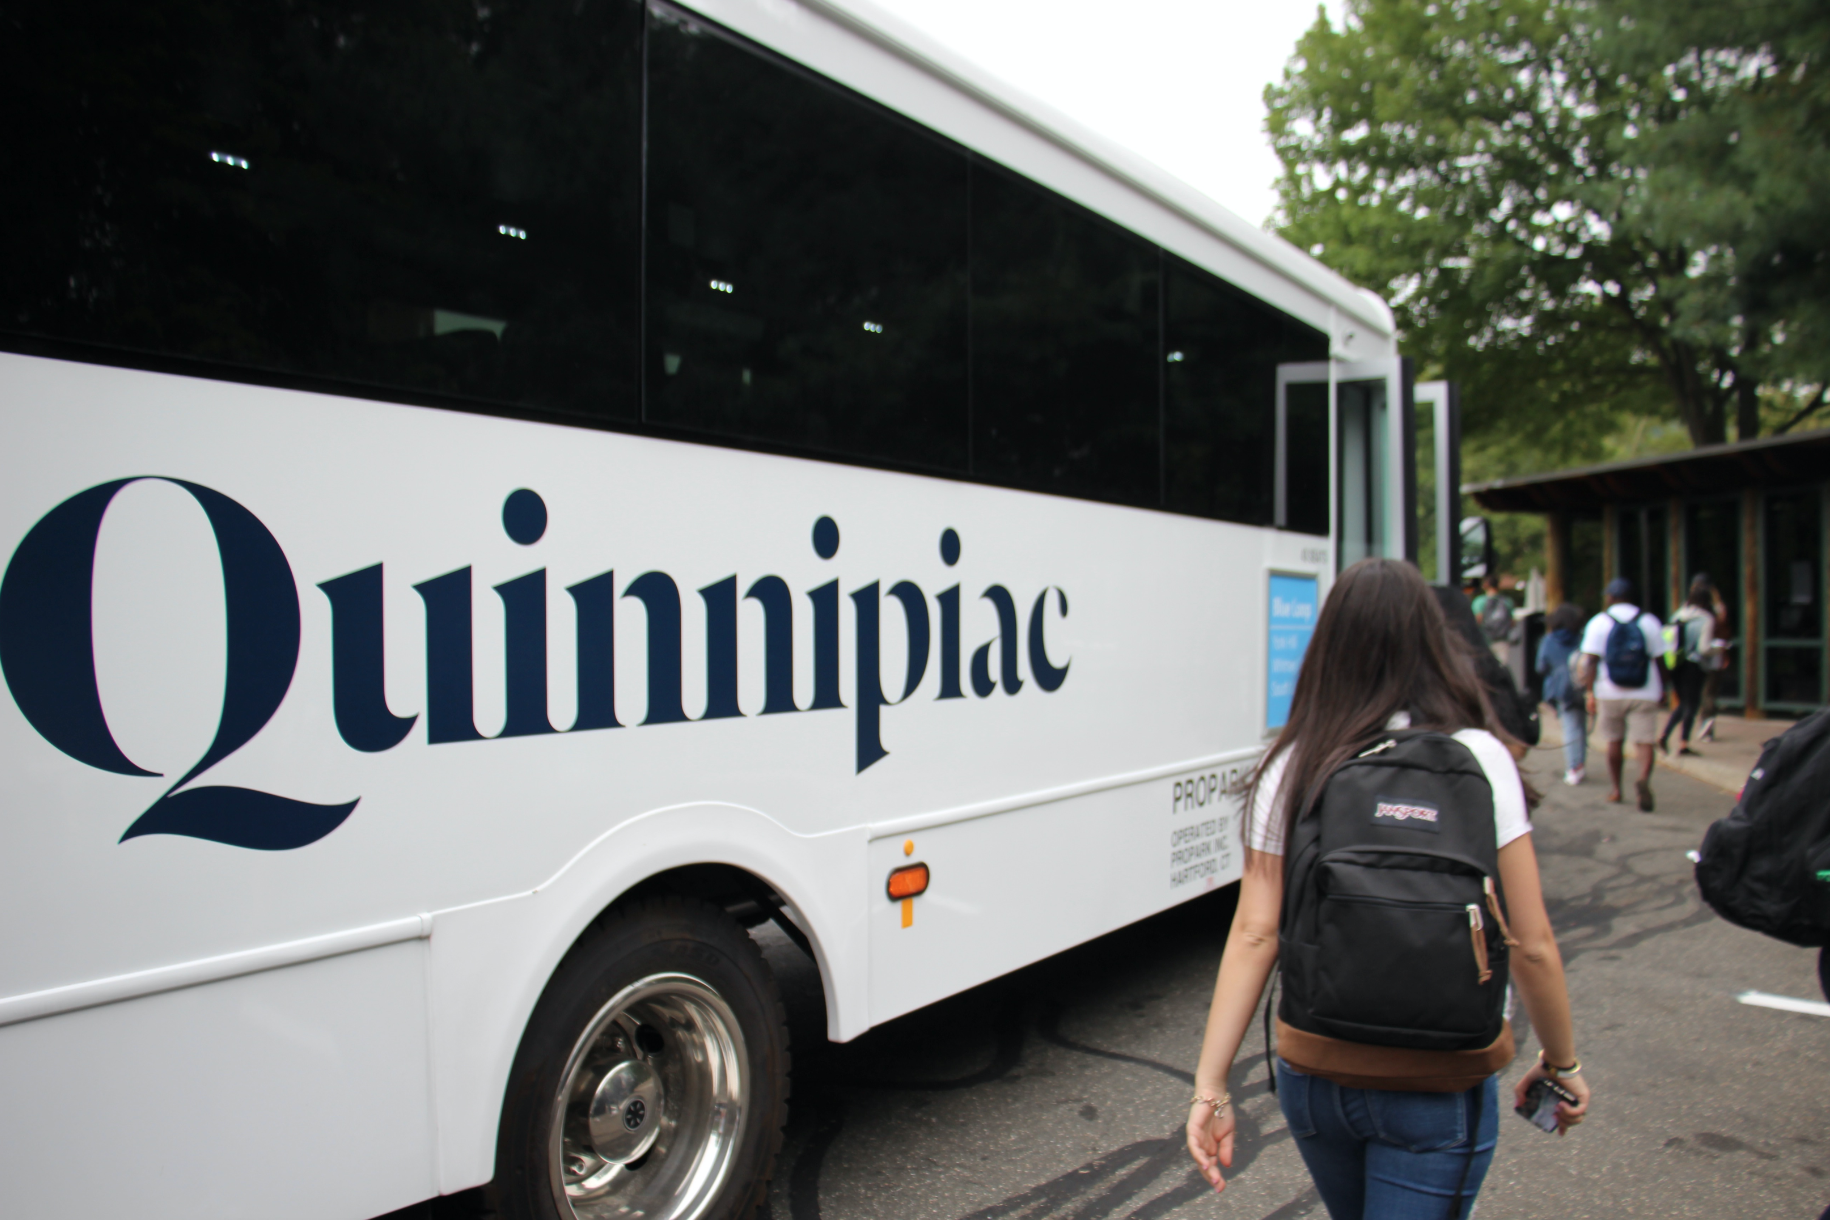 Pro Park is the new face of Quinnipiac transportation